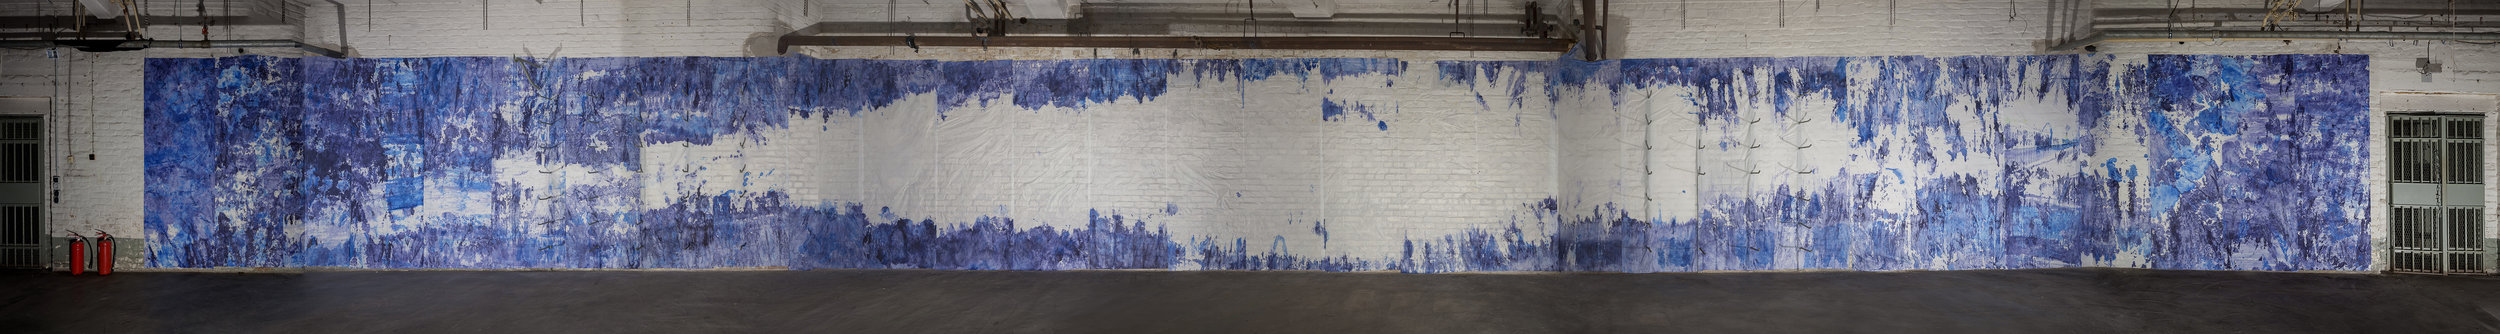 Raumfahrt, 2018 - Painting photomontage of the room ink, watercolours on rice paper glued on walls, 250 cm x 30 m